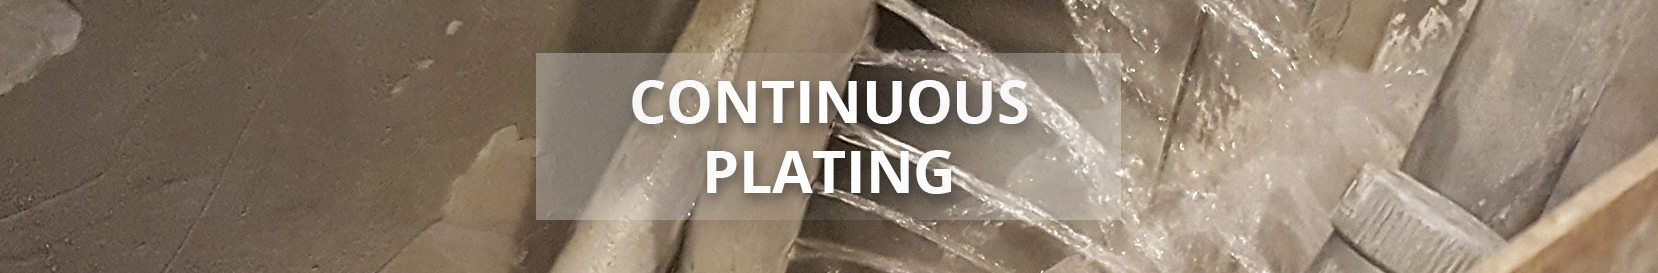 Precision Process - continuous Plating - Plating Accessories